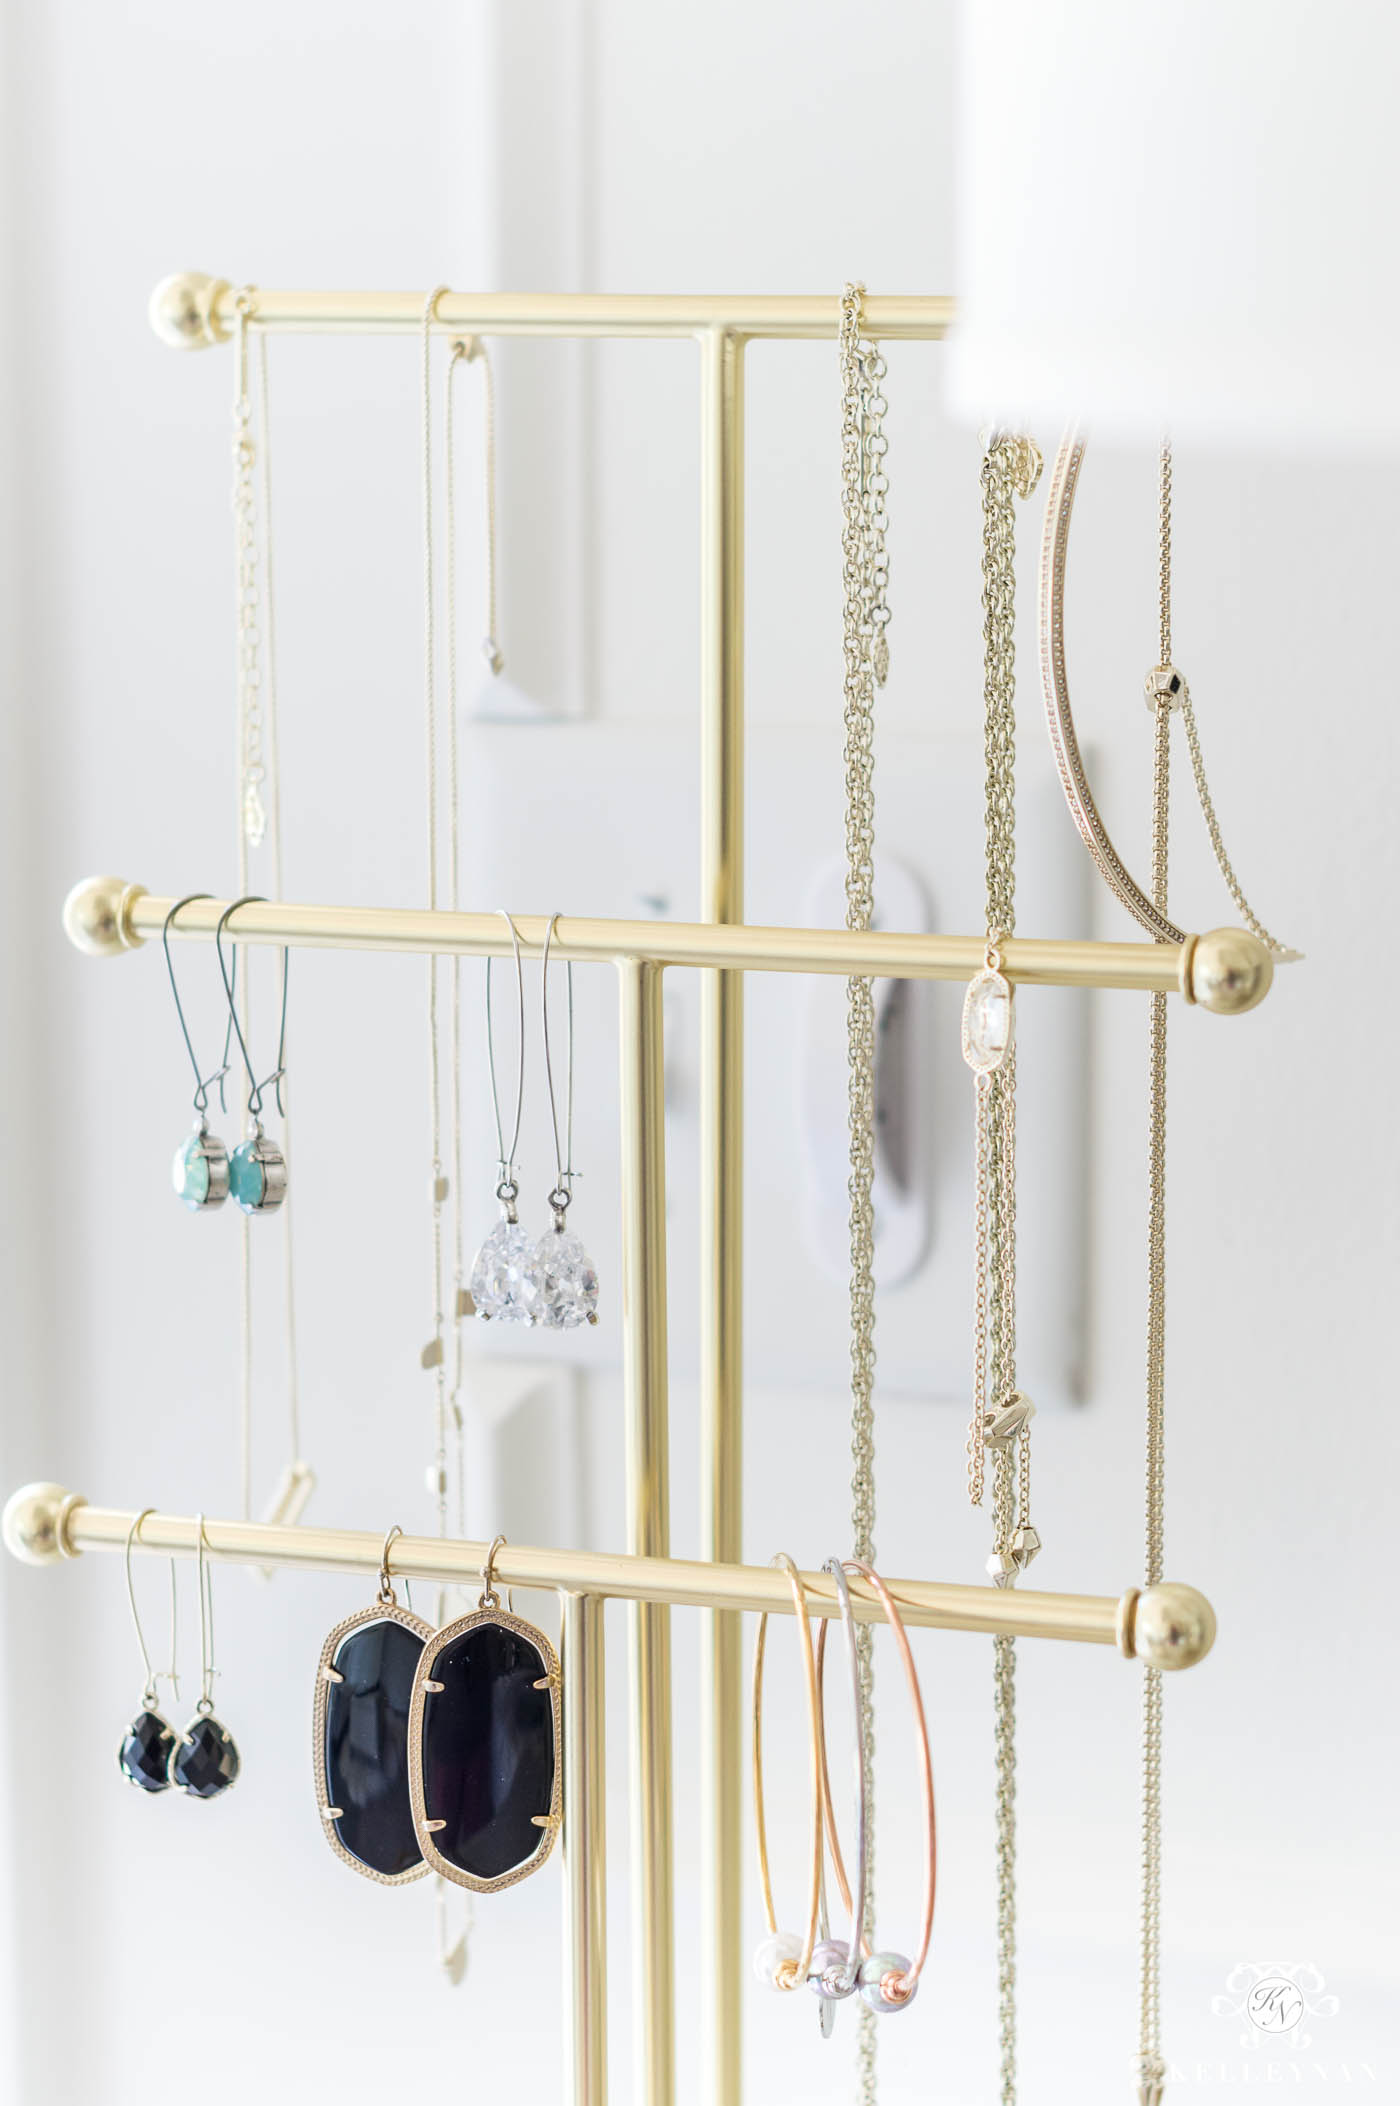 Brass Jewelry Stand for Display that will hold long necklaces